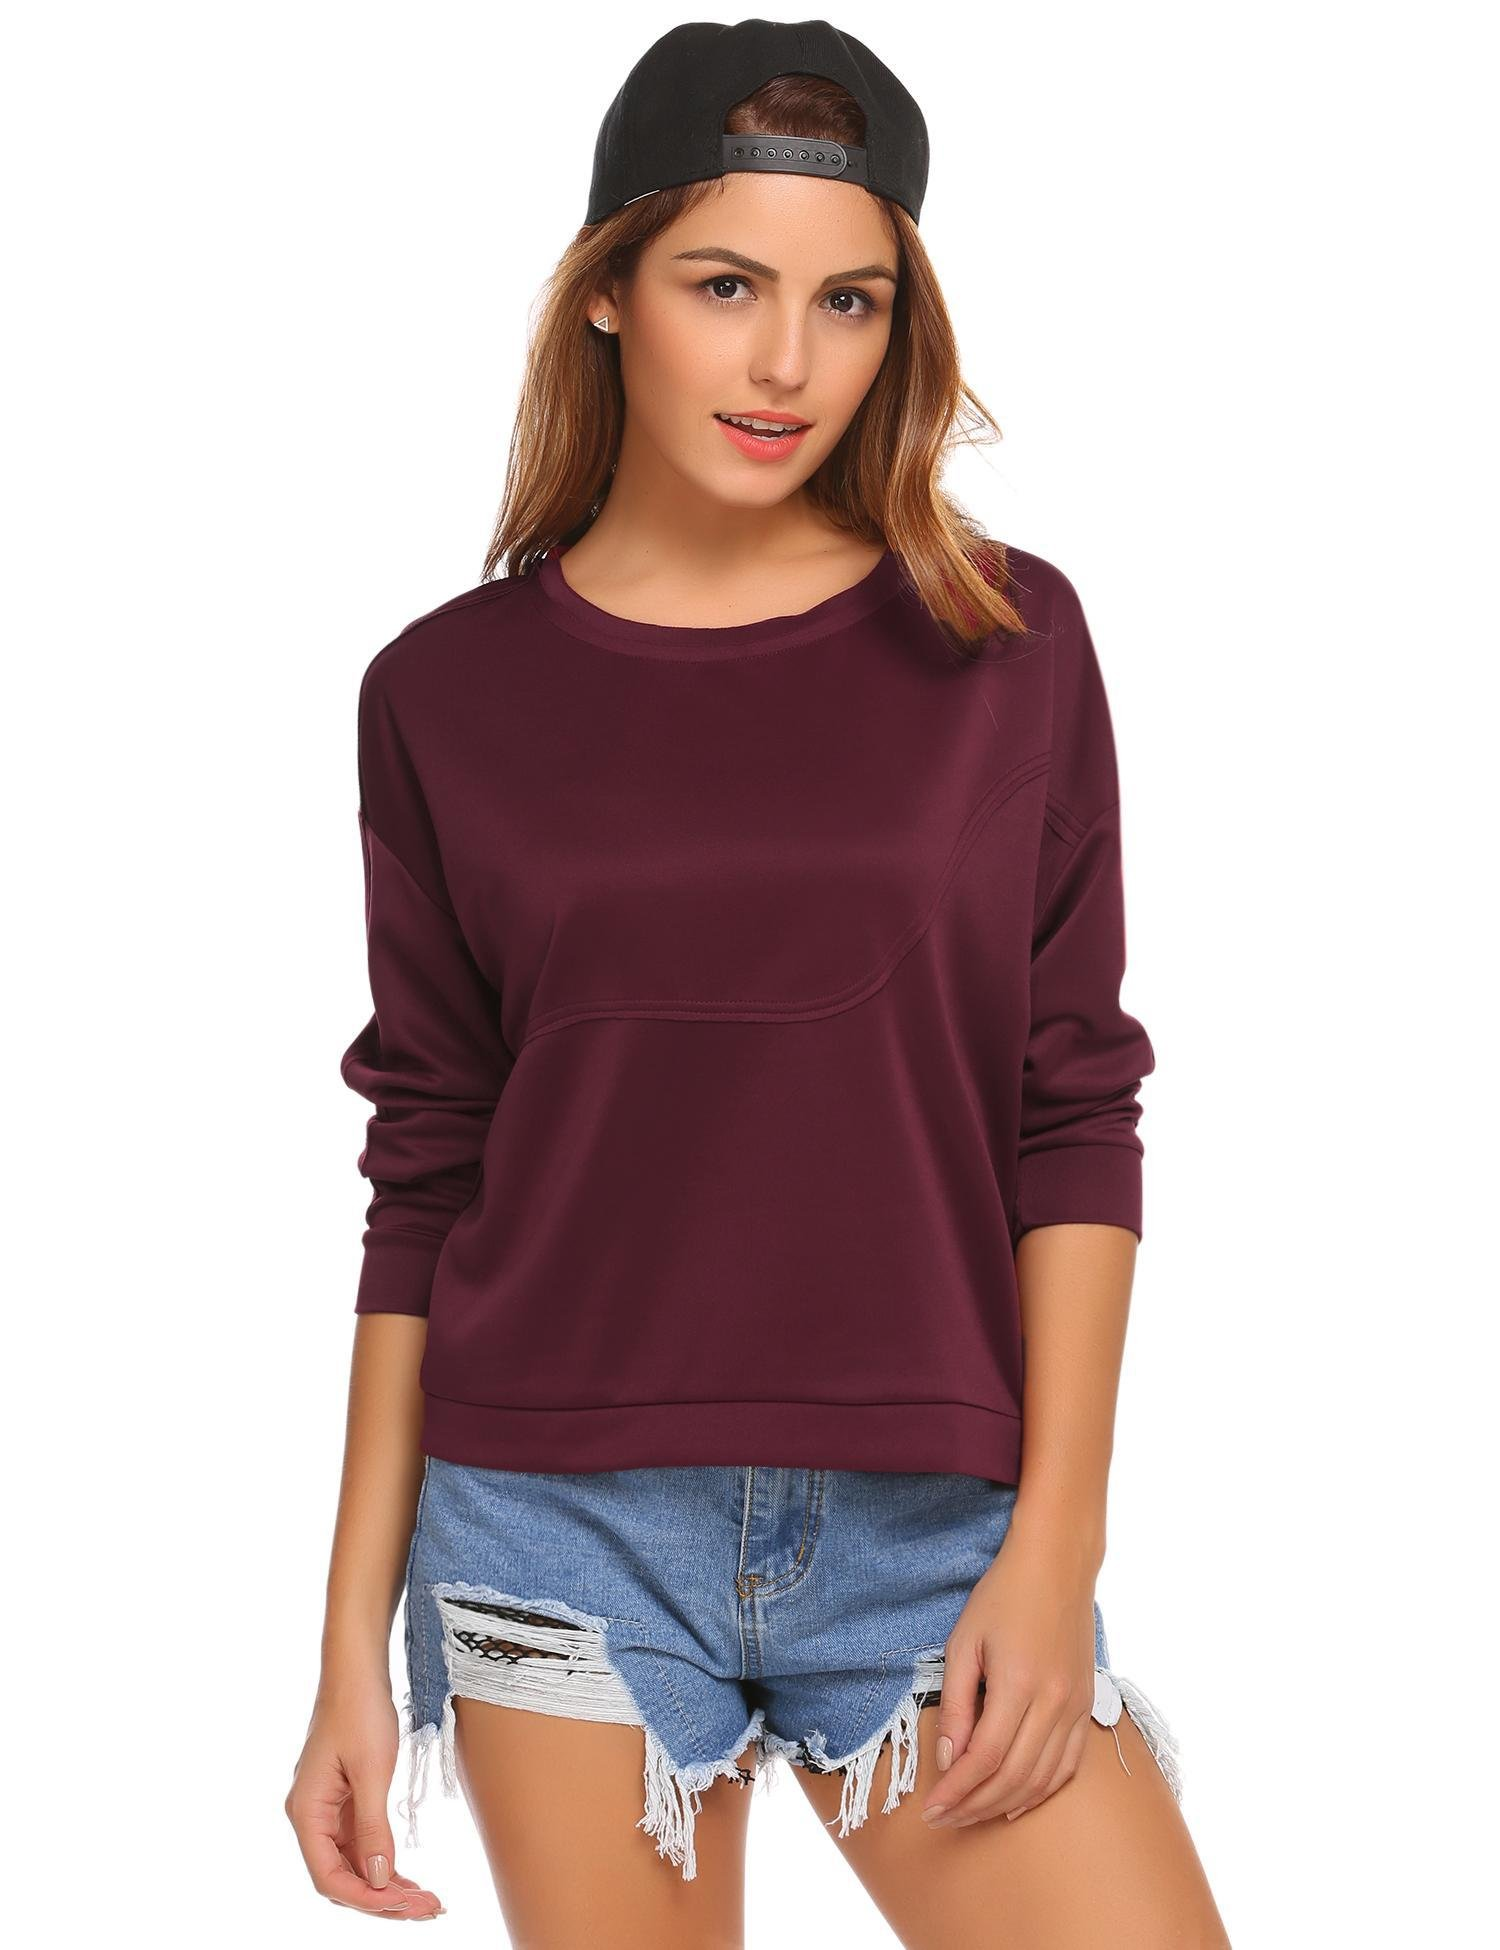 Zeagoo Casual Loose Fit Wine Red Long Sleeve Short Sweatshirt Blouse for Teen Girls,1wine Red,Large